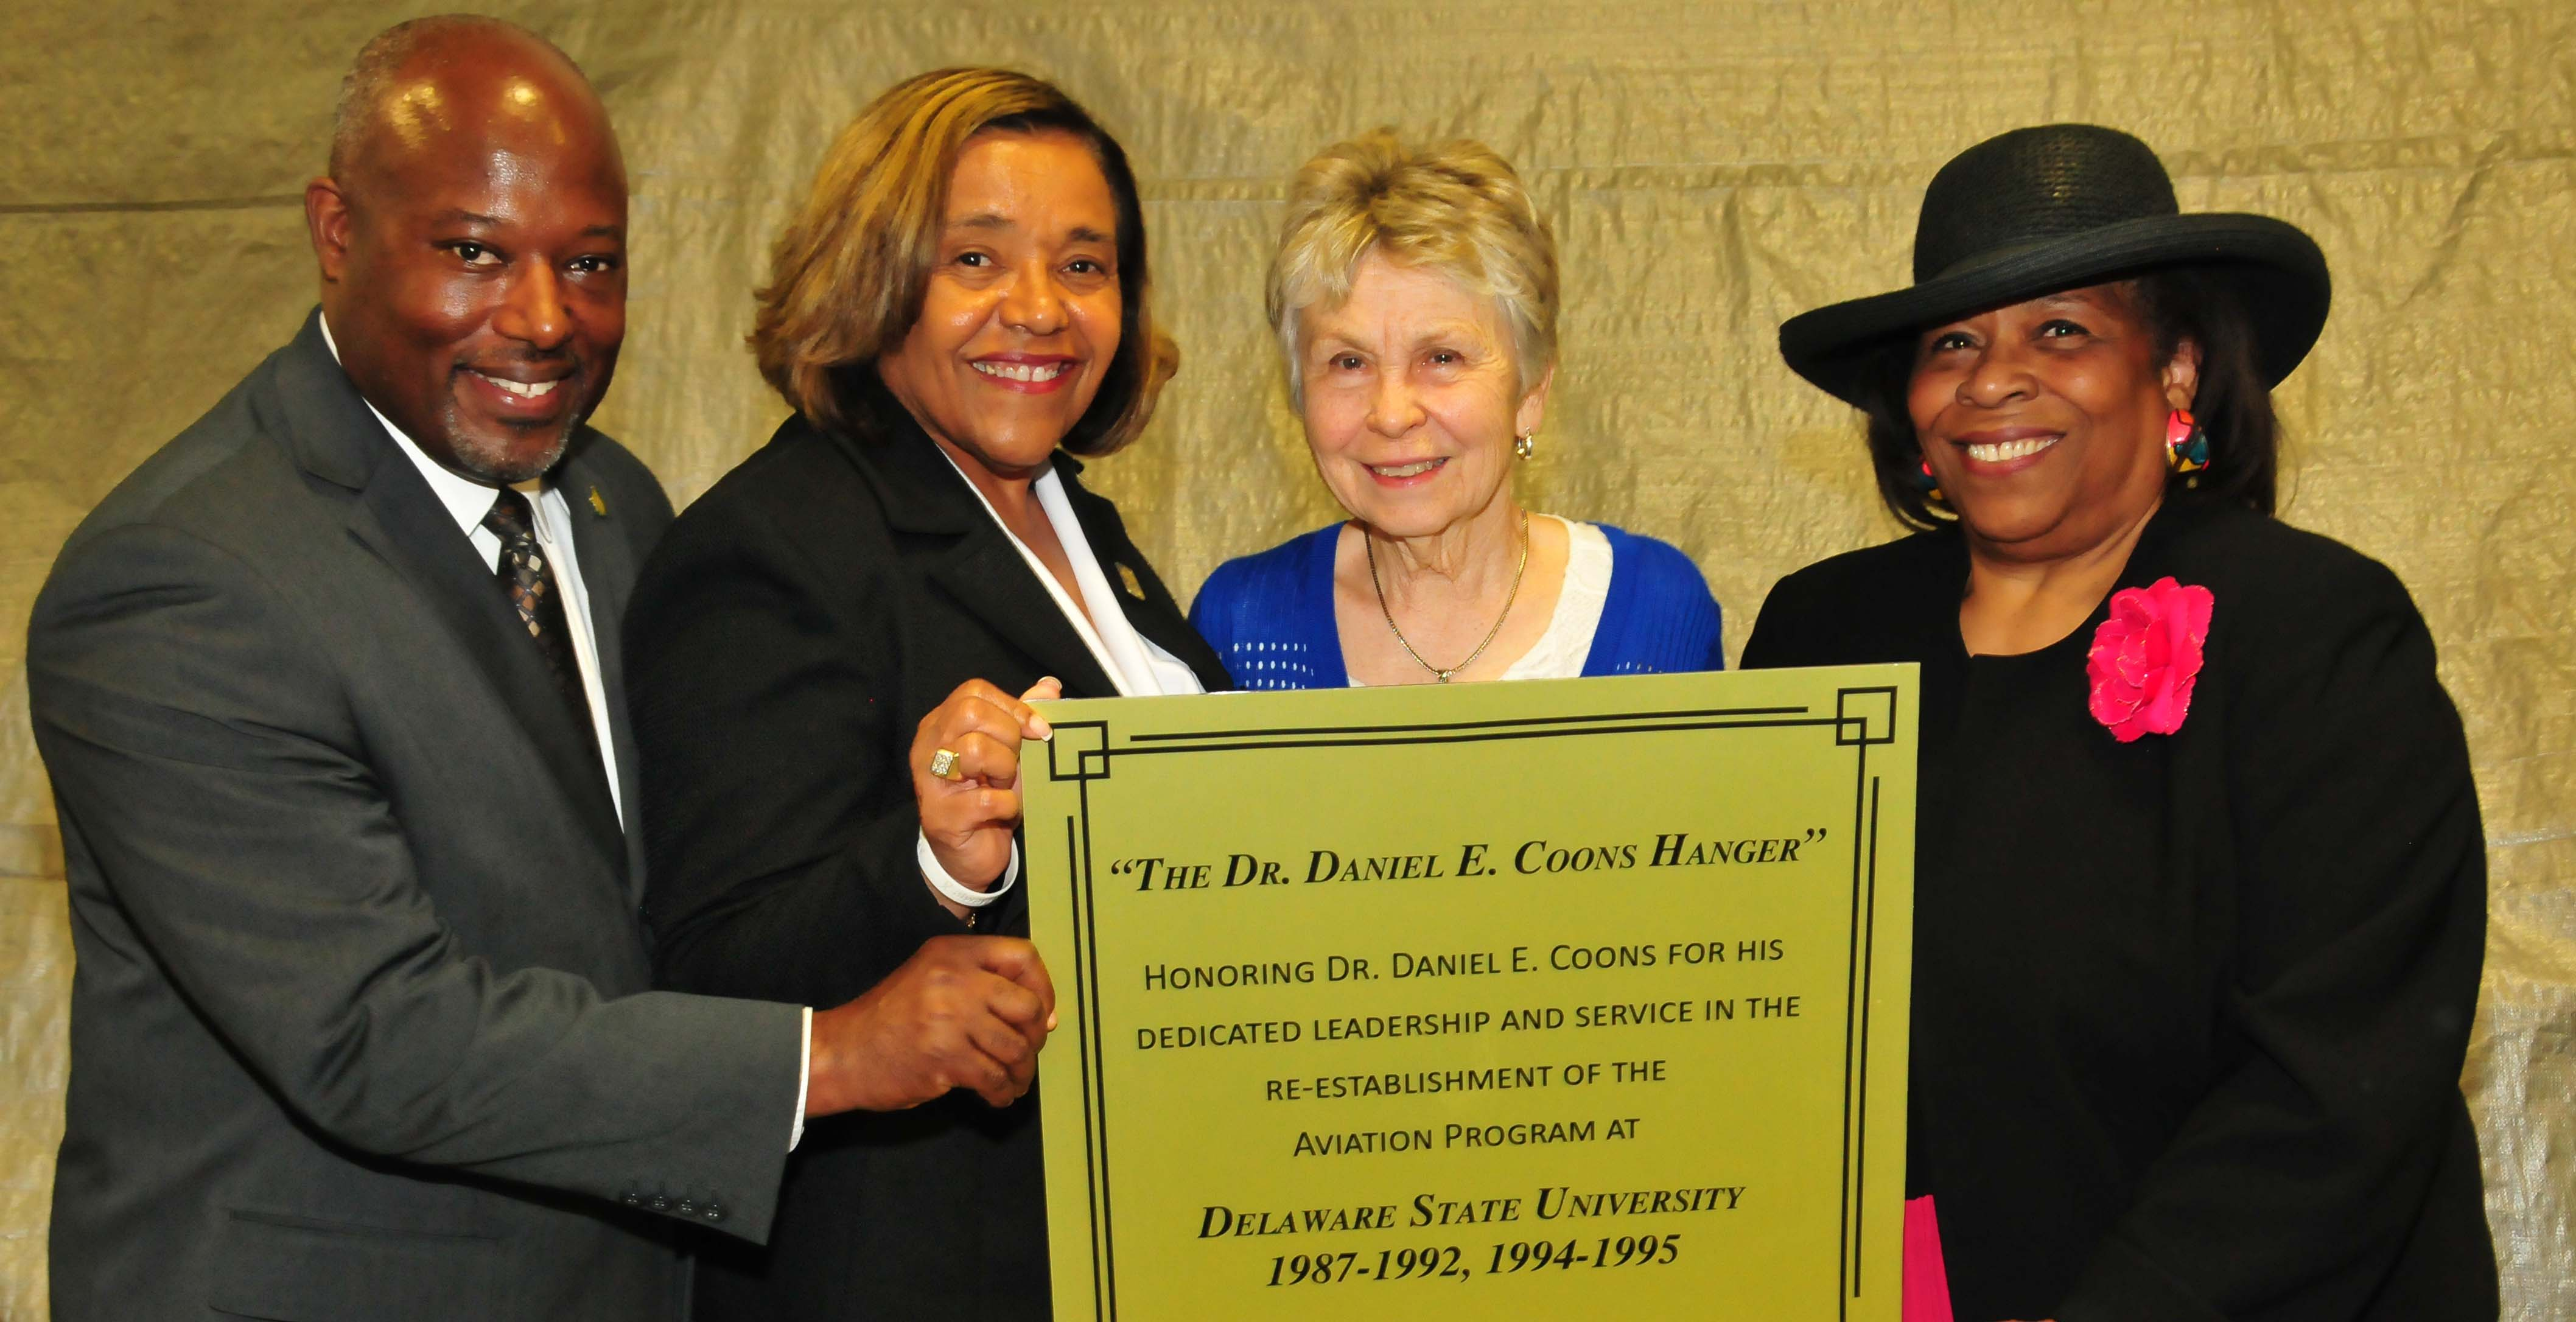 (L-r) Lt. Col. Michael Hales, director of the DSU Aviation Program; College of Business Dean Donna Covington; JoAnn Coons, widow of Dr. Coons; Dr. Wilma Mishoe, DSU Board of Trustees member, hold a copy of the plaque that is being created for the Daniel E. Coons Hangar.